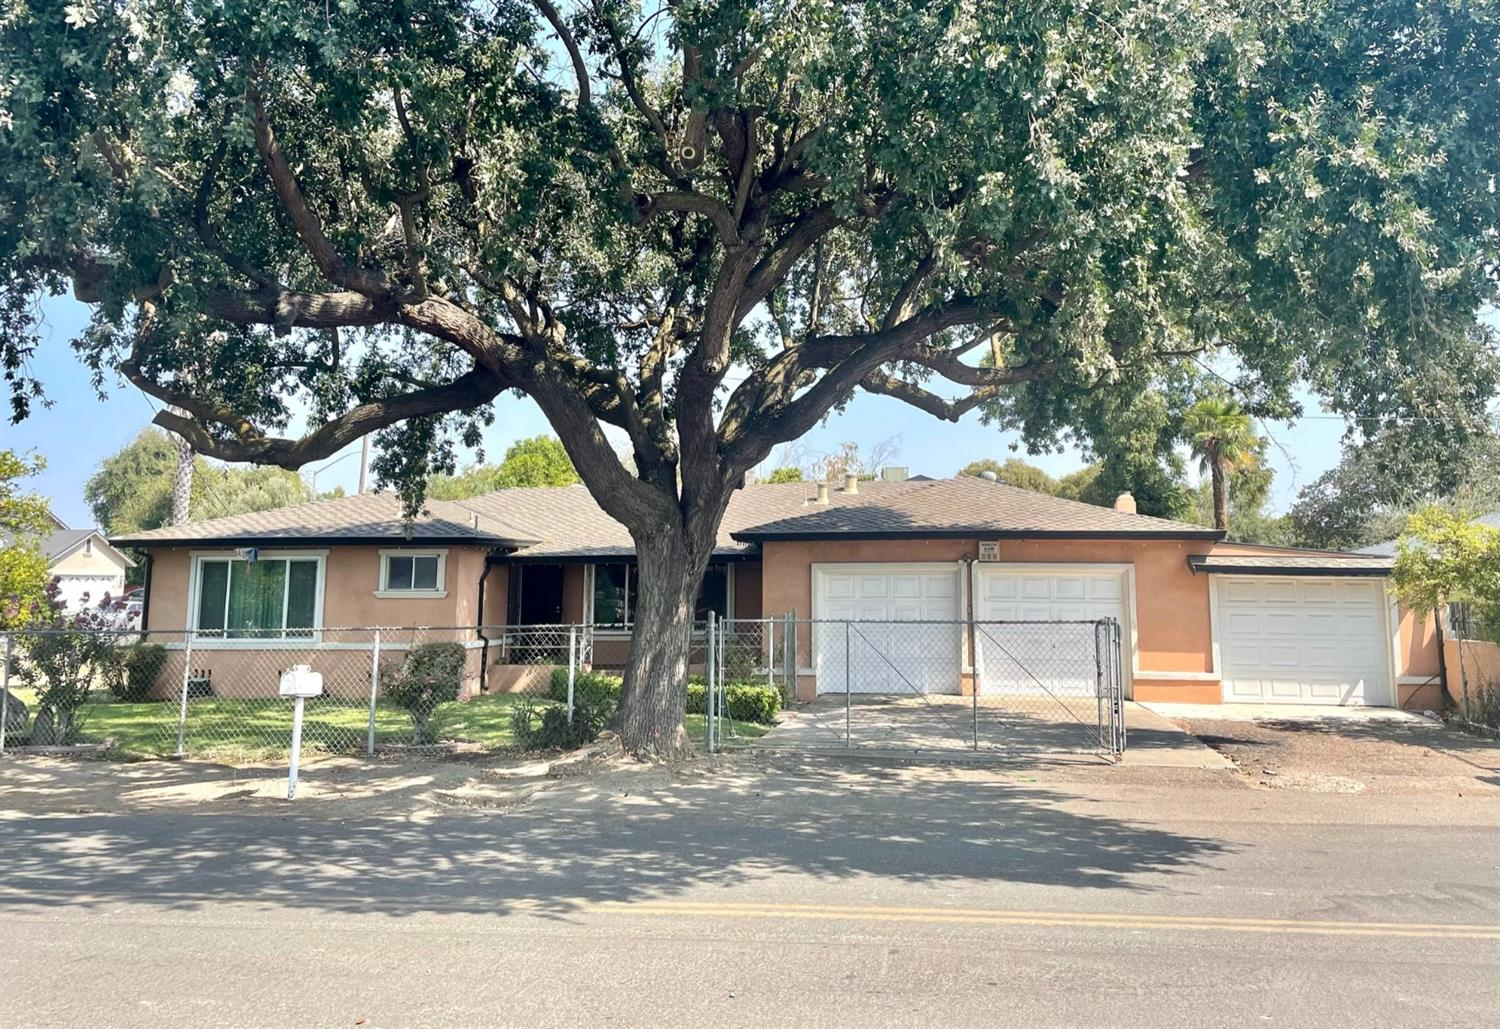 1740 SqFt House In South Stockton